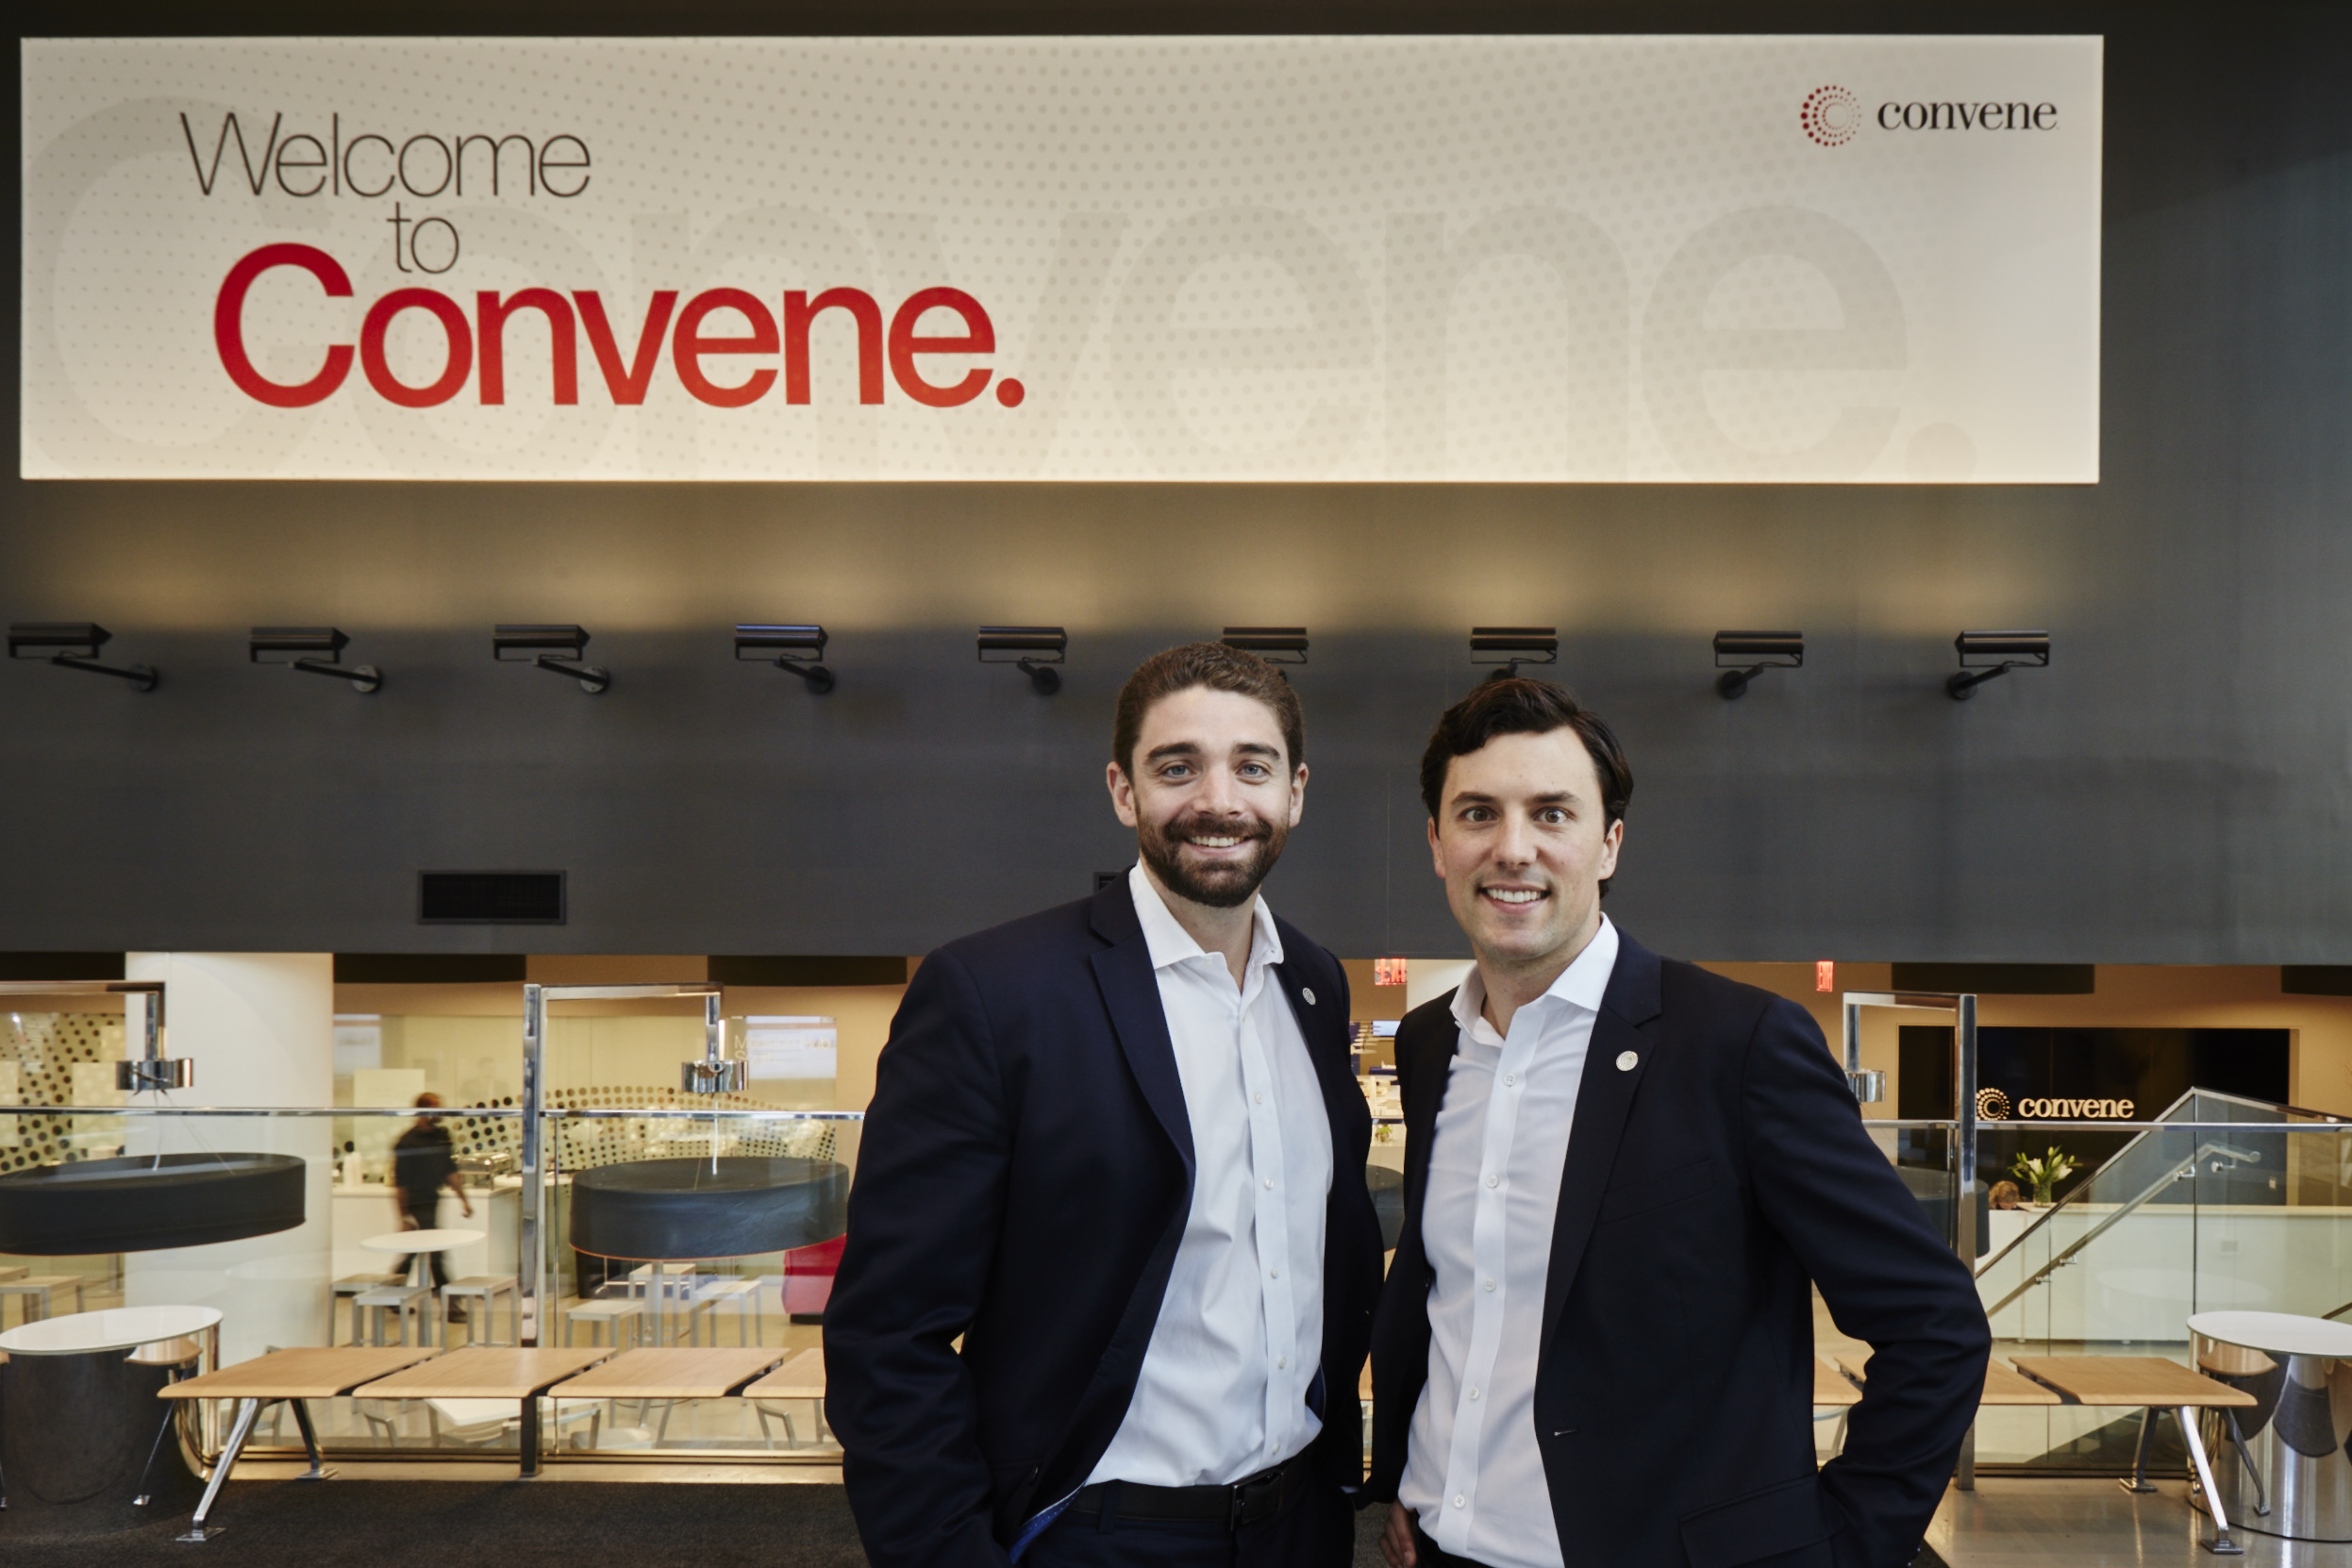 Ryan Simonetti, Co-Founder and CEO of Convene, and Chris Kelly, Co-Founder and Chief Development Officer of Convene